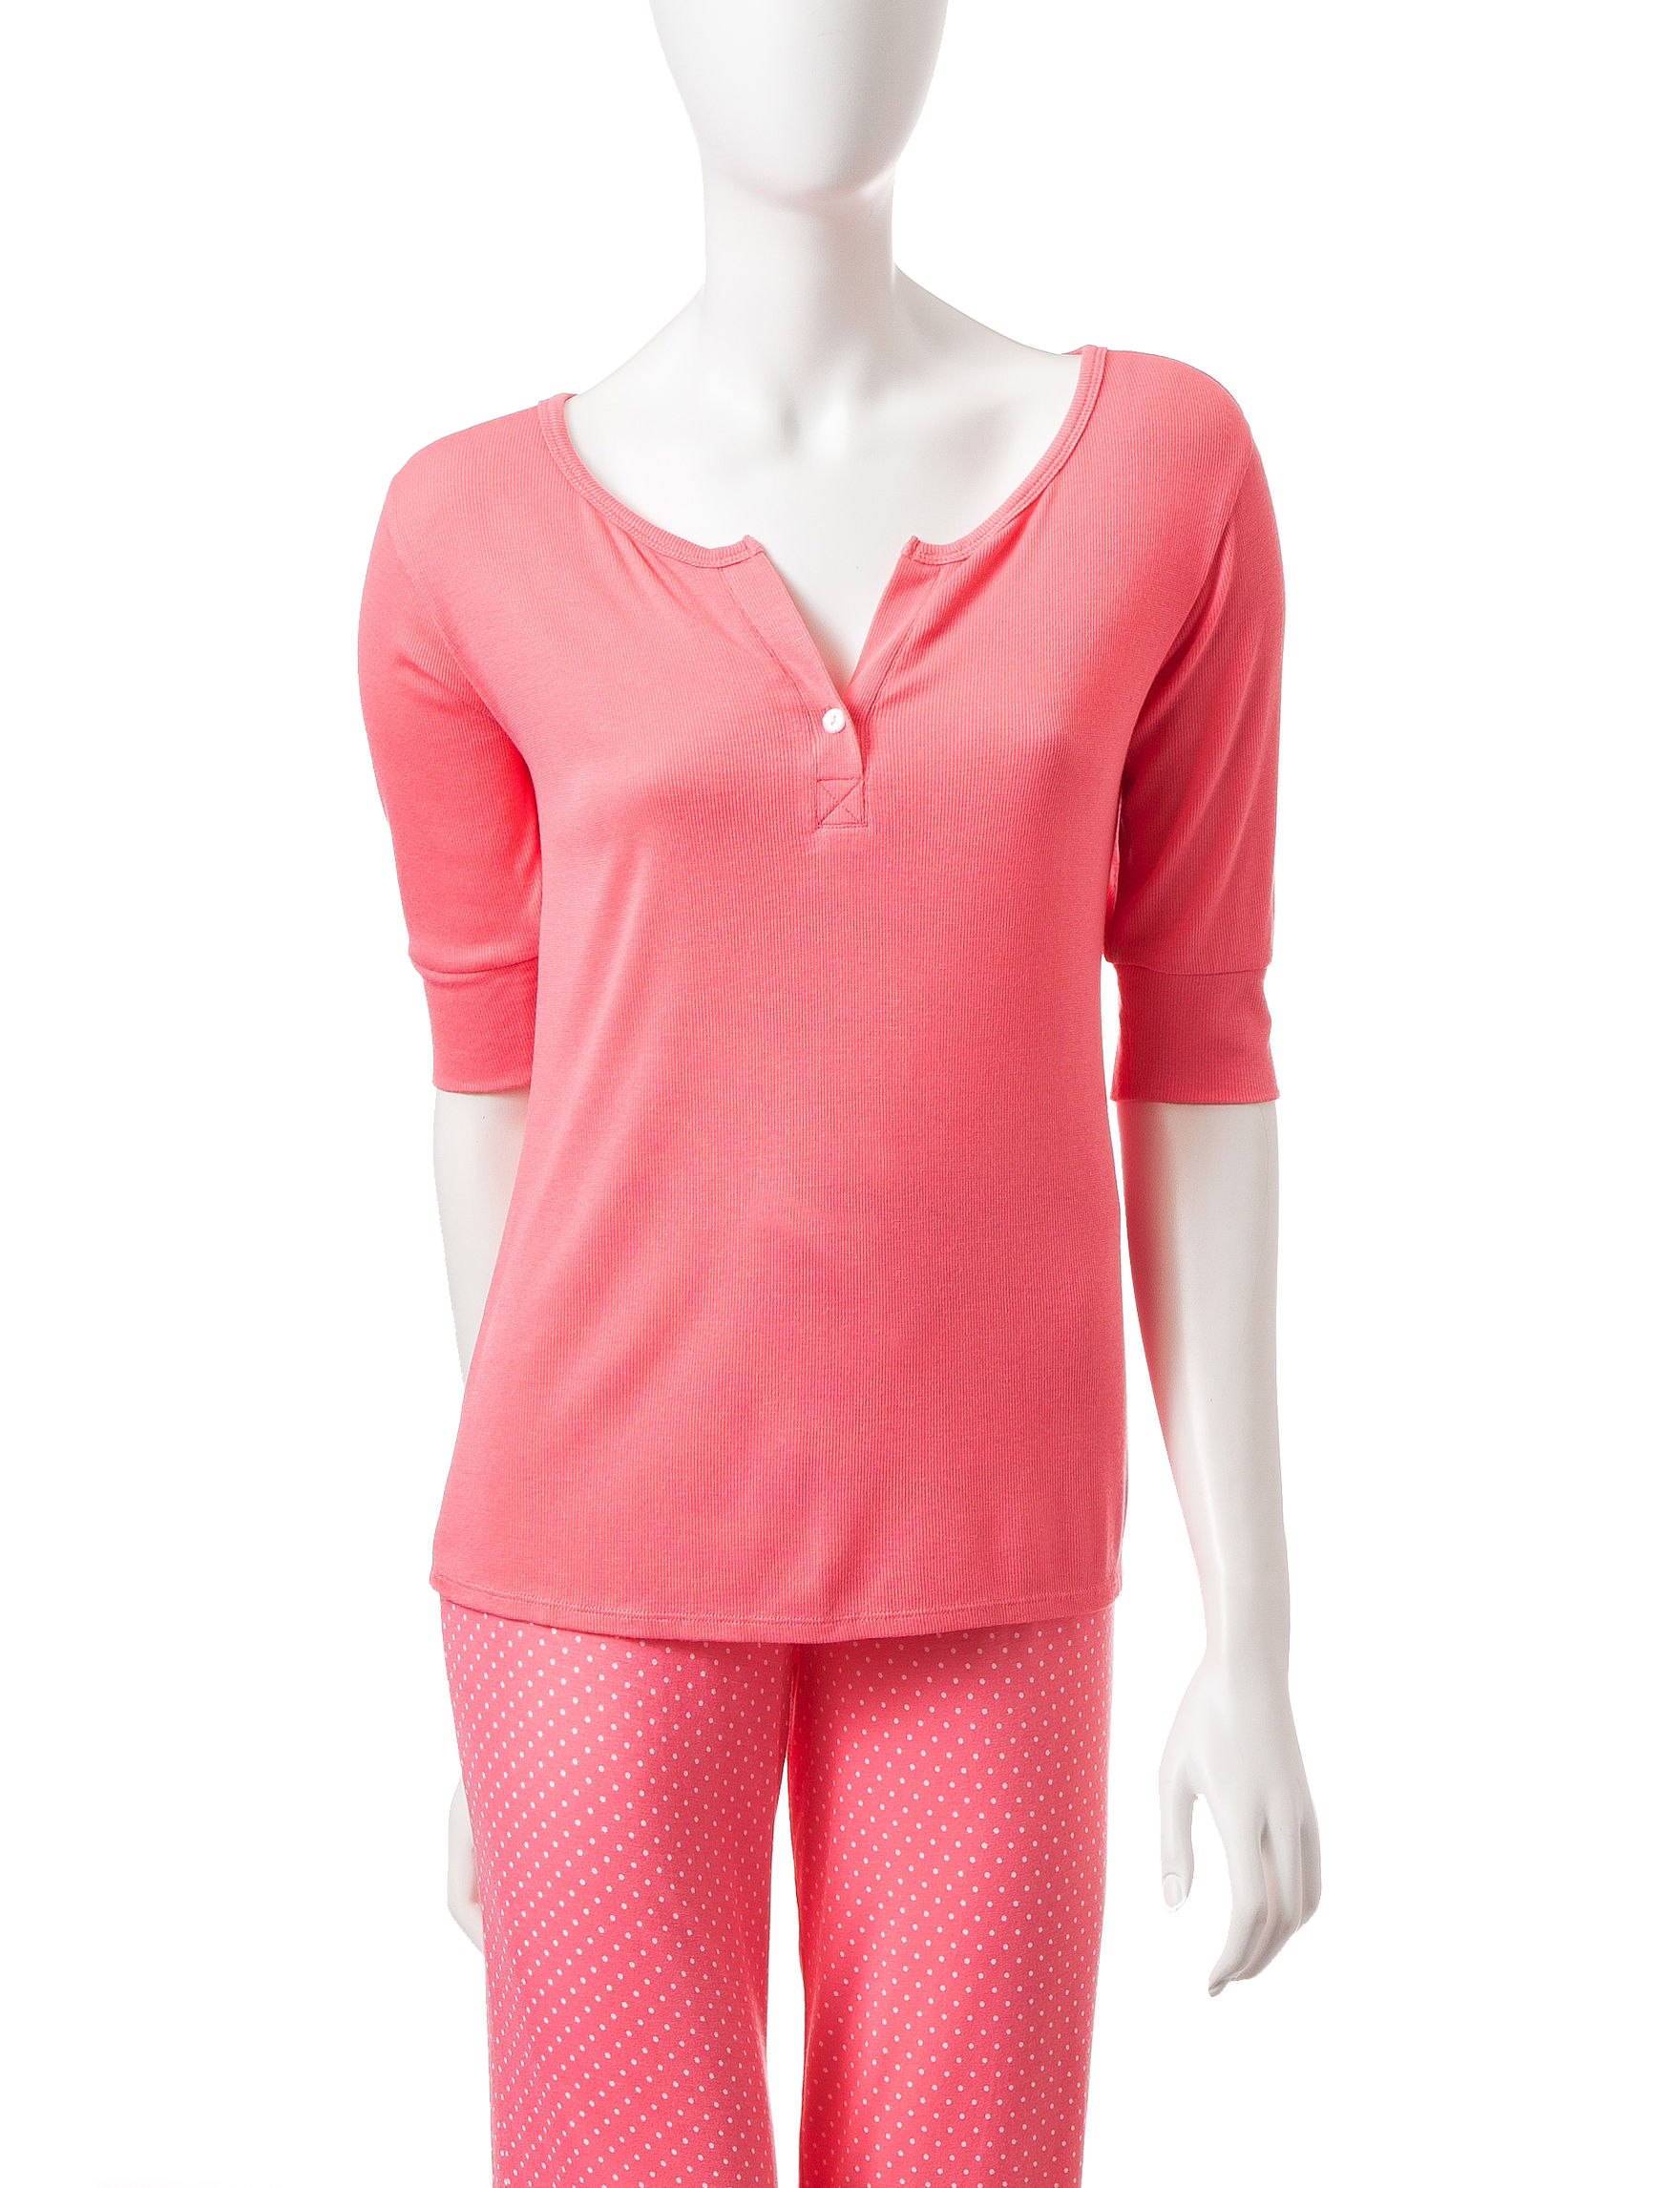 Laura Ashley Coral Pajama Tops